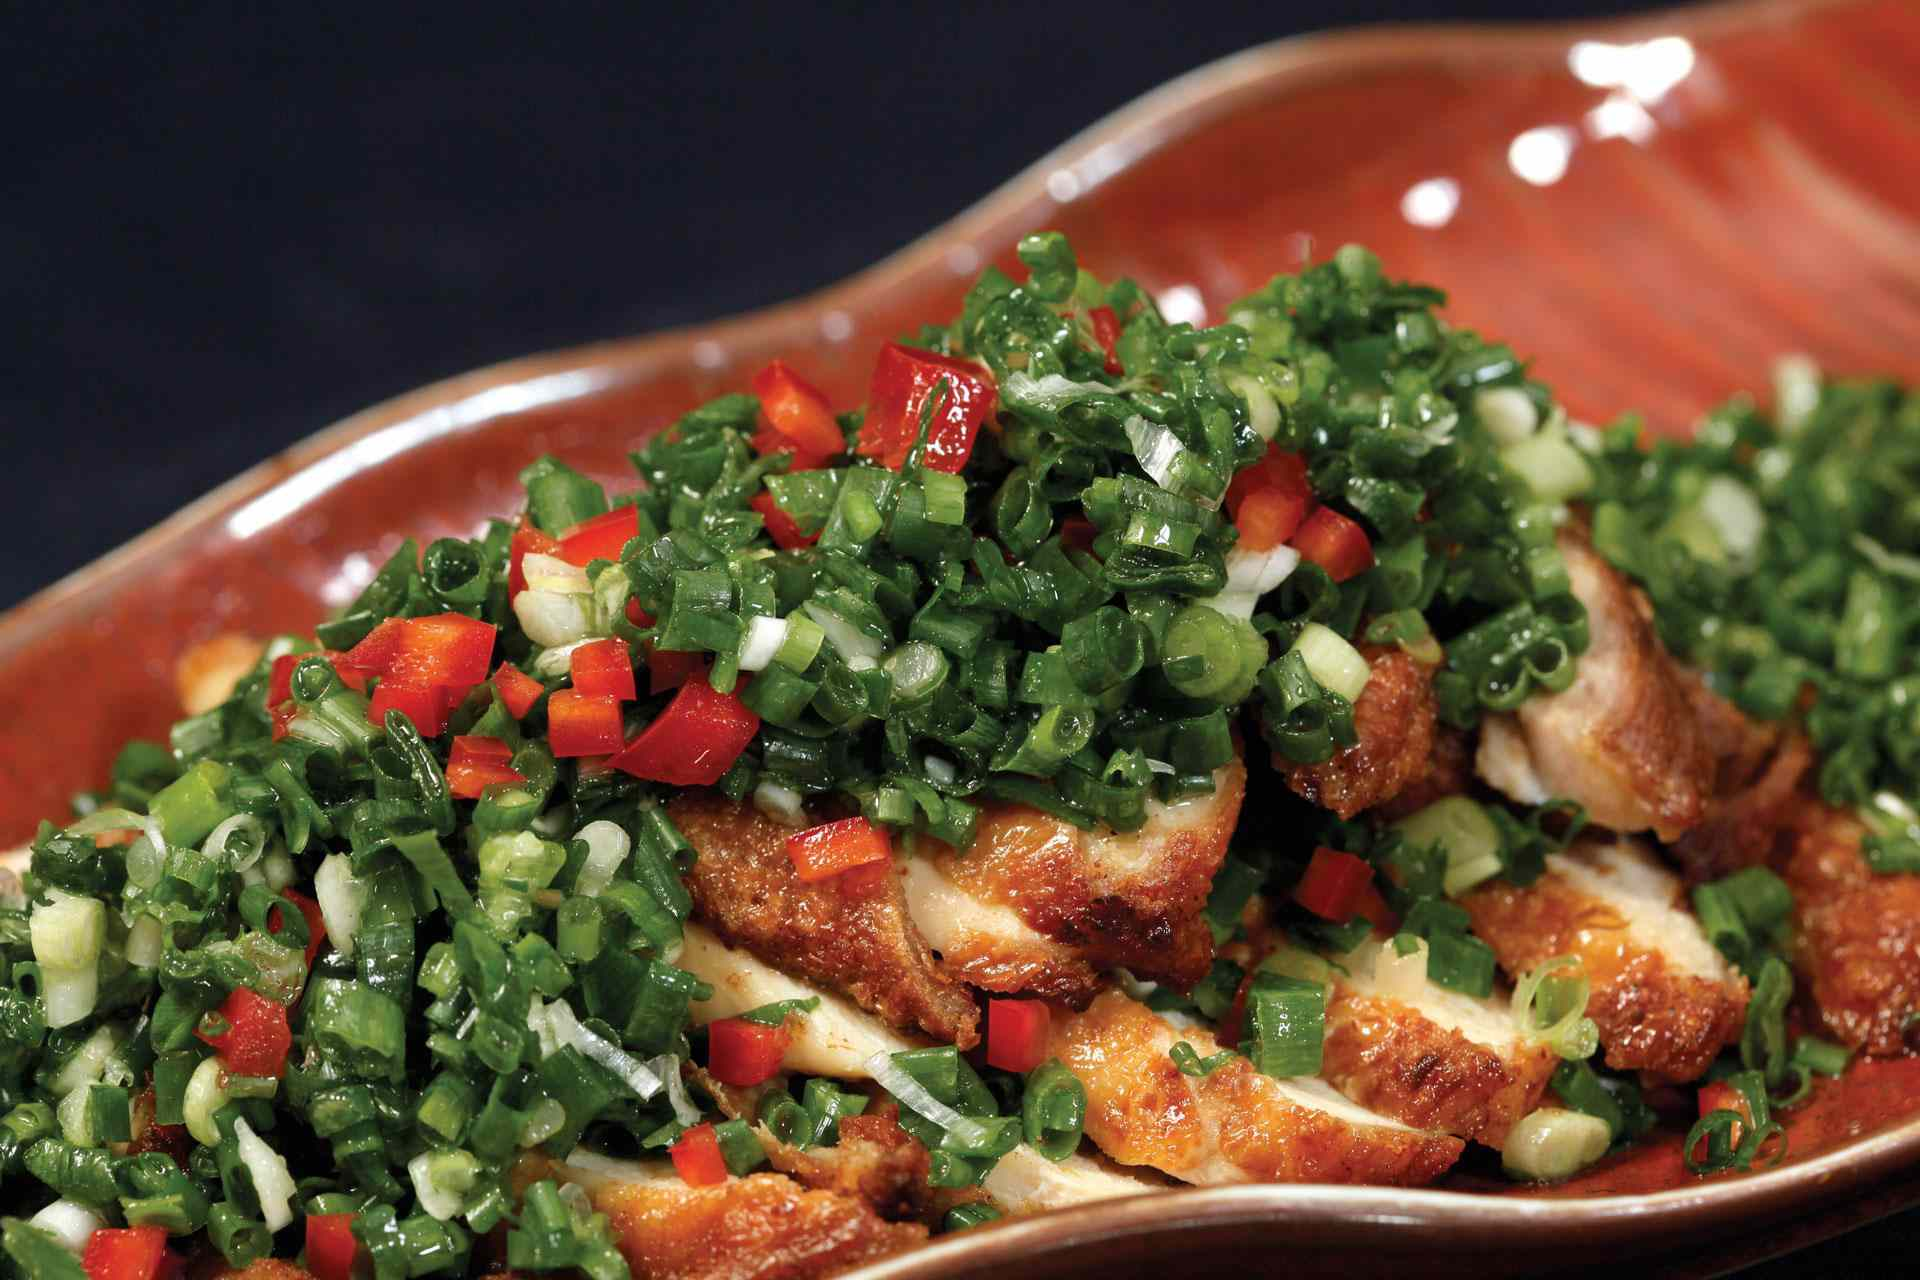 sliced, grilled chicken on a ceramic plate with a pile of scallions